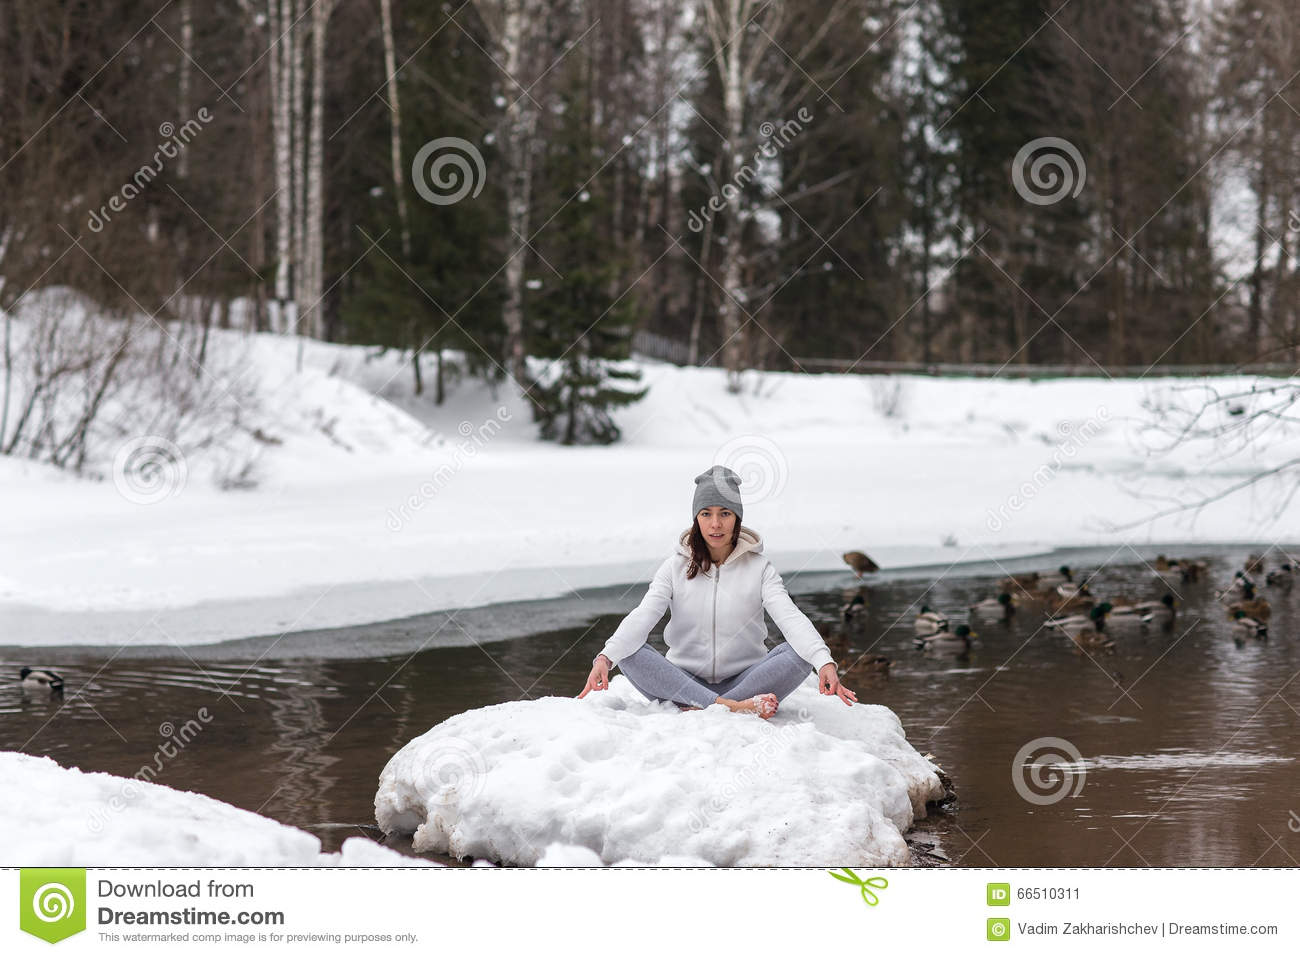 https://thumbs.dreamstime.com/z/winter-yoga-session-beautiful-place-young-athletic-woman-doing-woods-girl-engaged-fitness-park-66510311.jpg